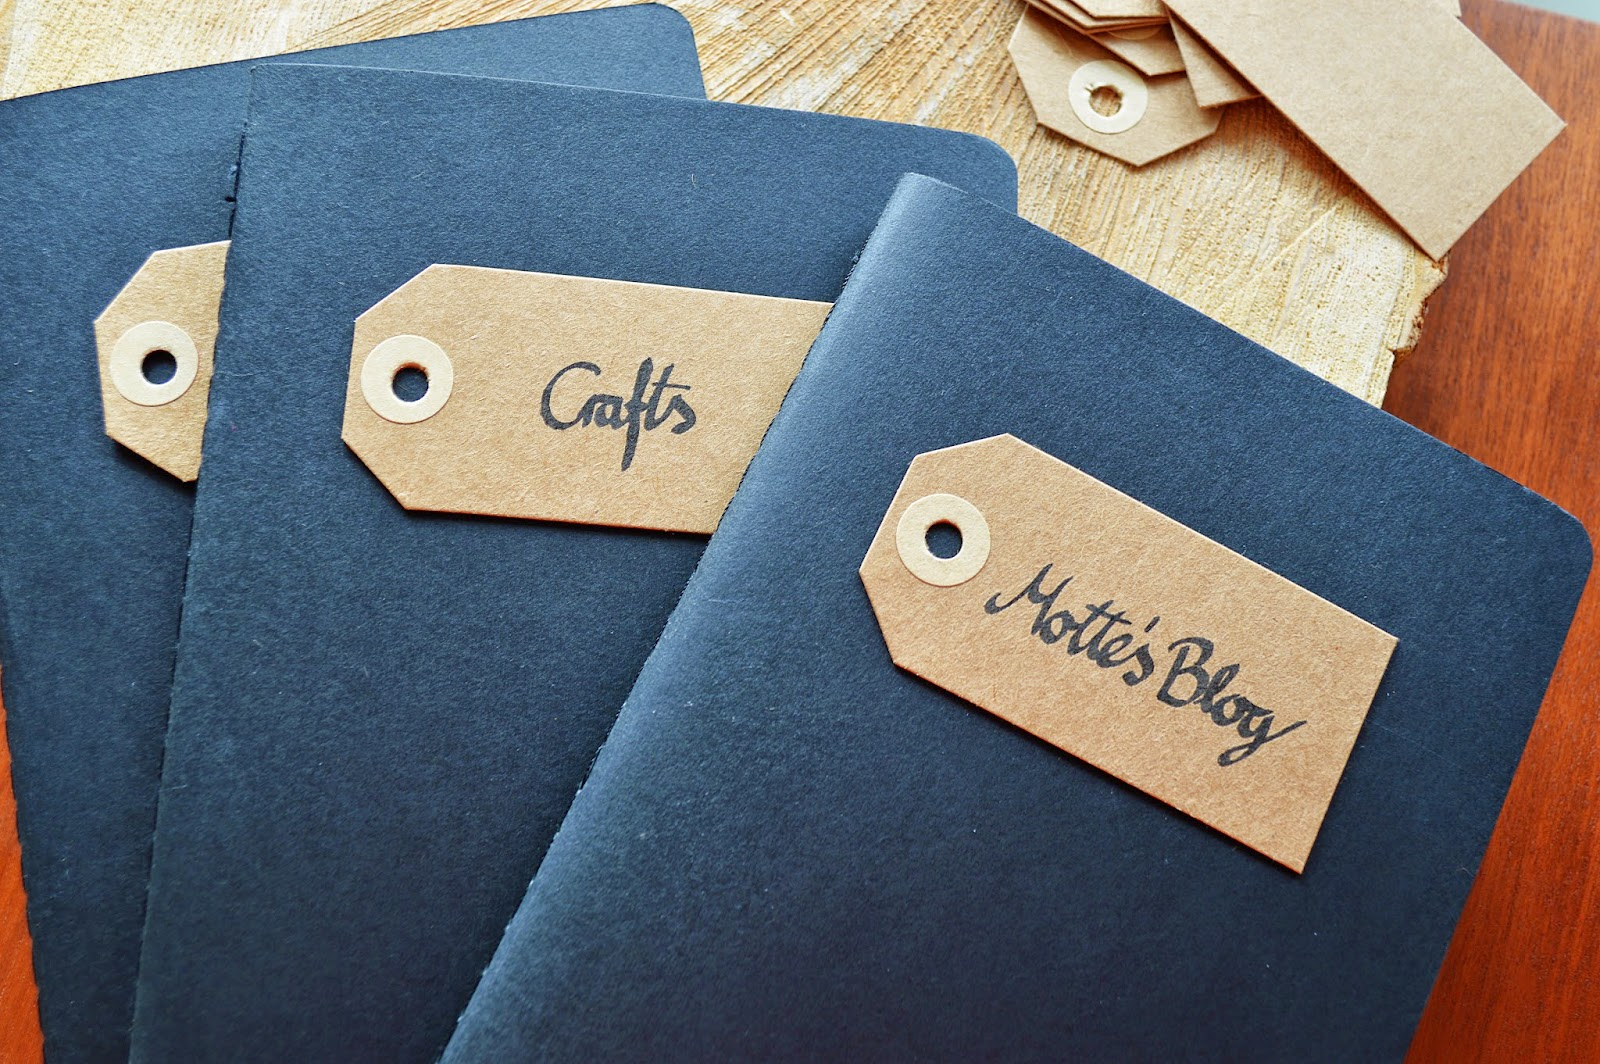 DIY Notebook Tags | Motte's Blog